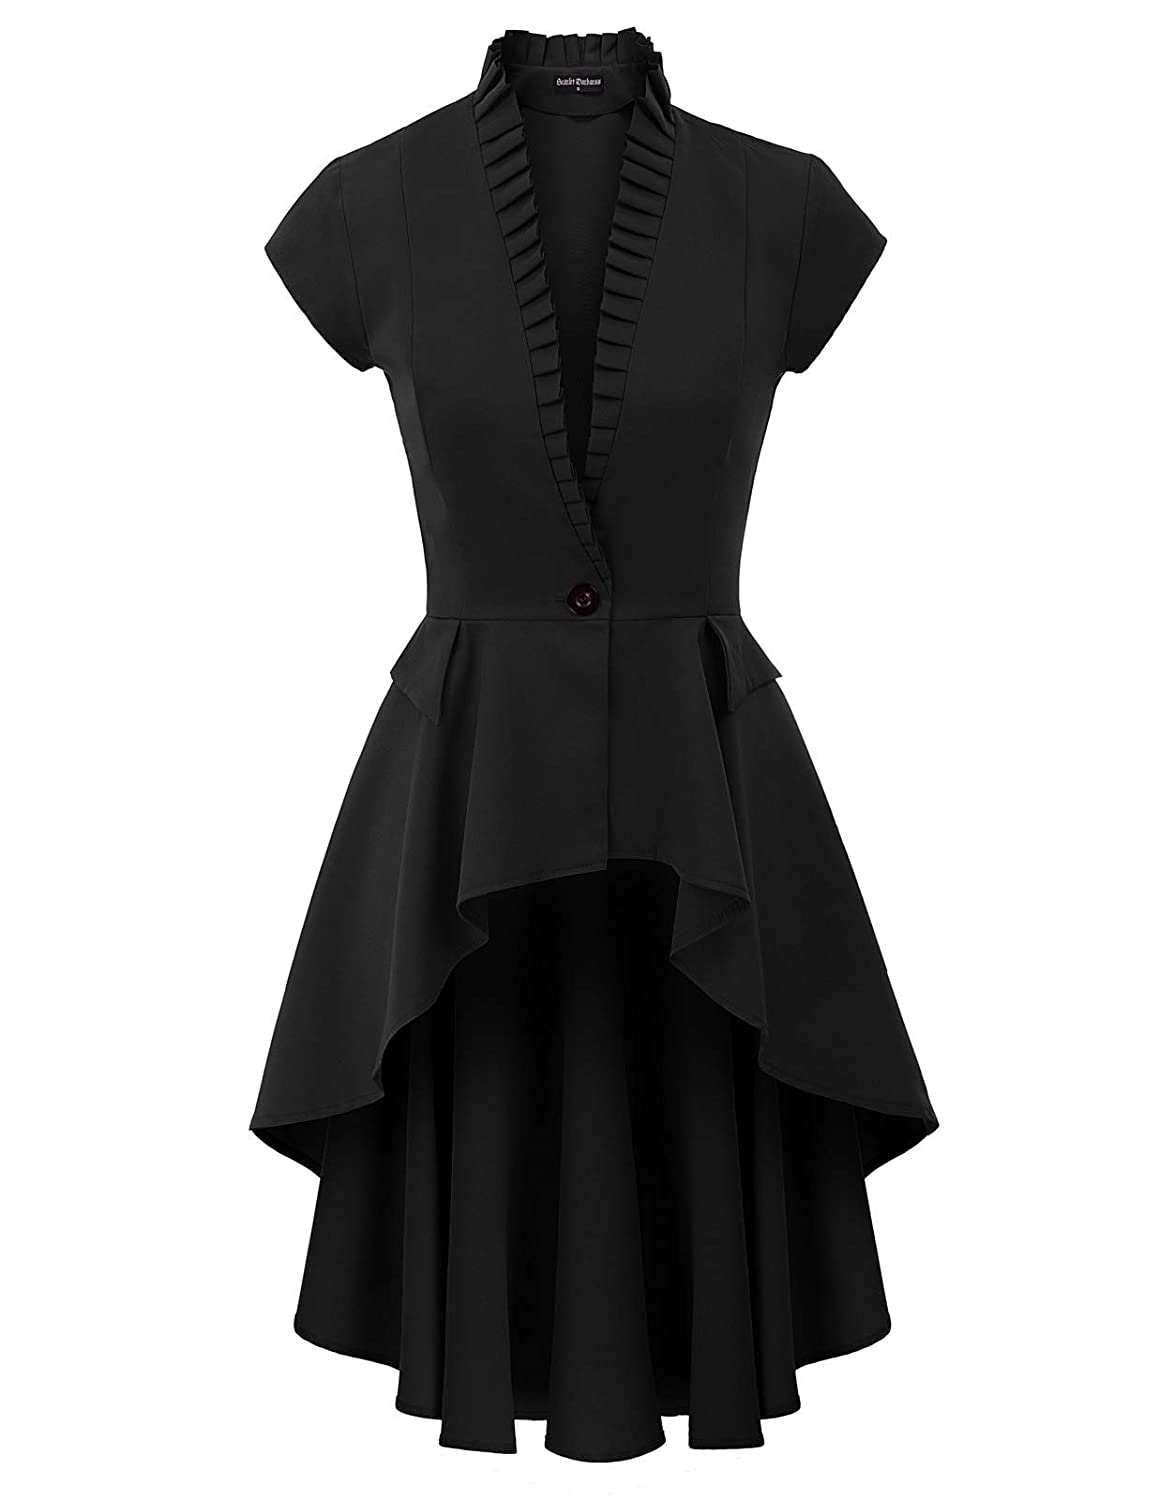 Victorian Blouses, Tops, Shirts, Sweaters Womens Gothic Steampunk Jacket Long Victorian Waistcoat Jacket Top $37.99 AT vintagedancer.com